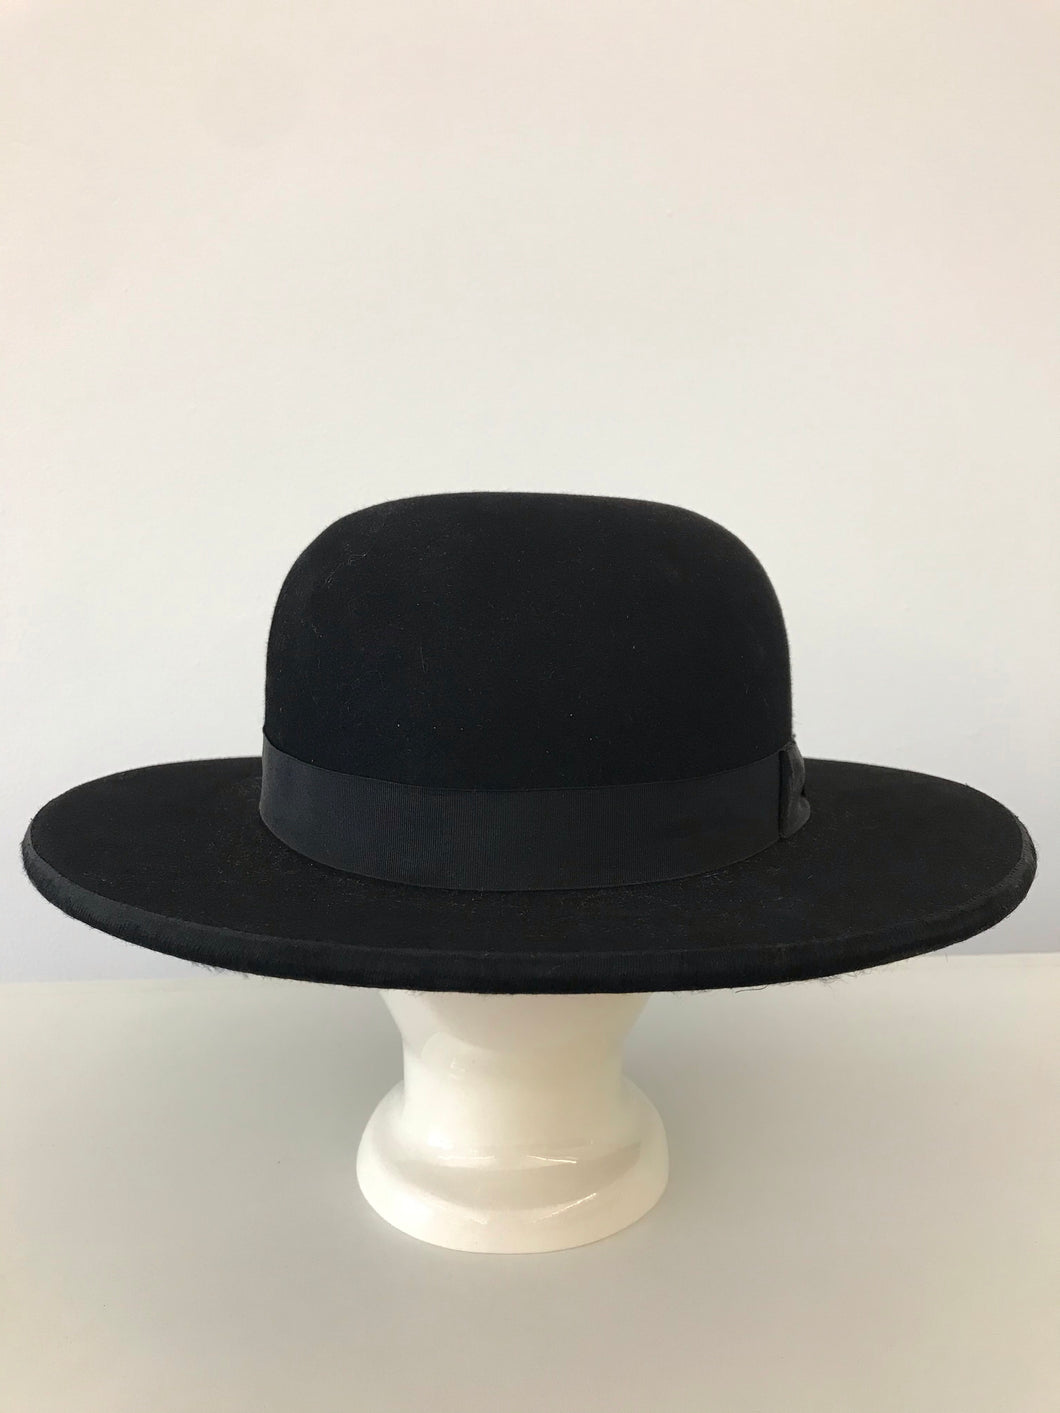 Antique Black Wool Felt Clergyman Style Hat By Scott & Co.